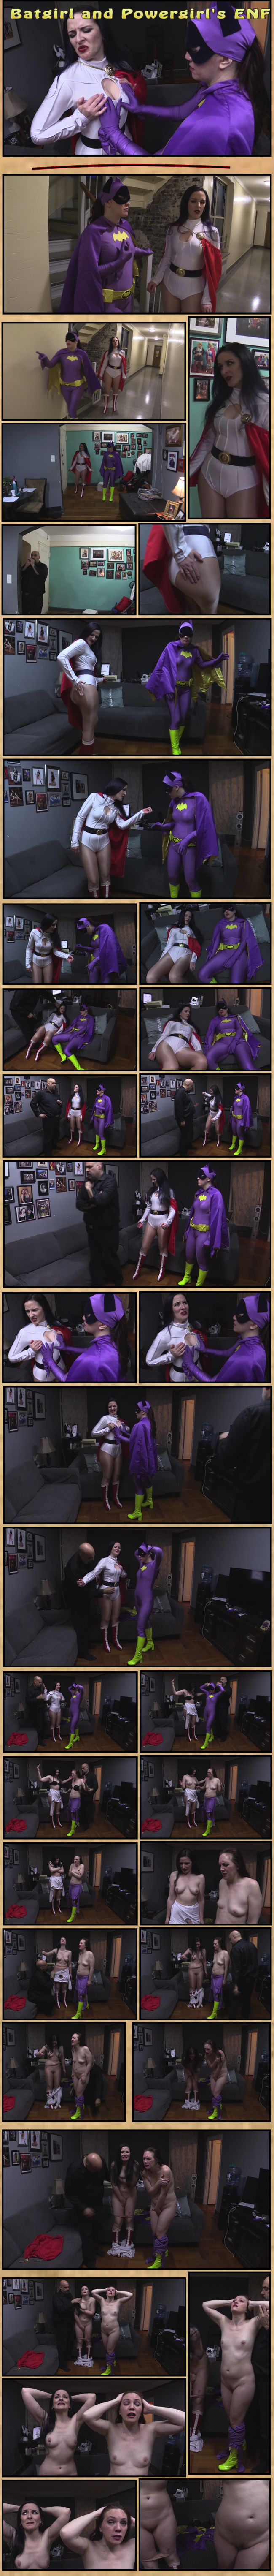 Batgirl's and Powergirls ENF nightmare 1